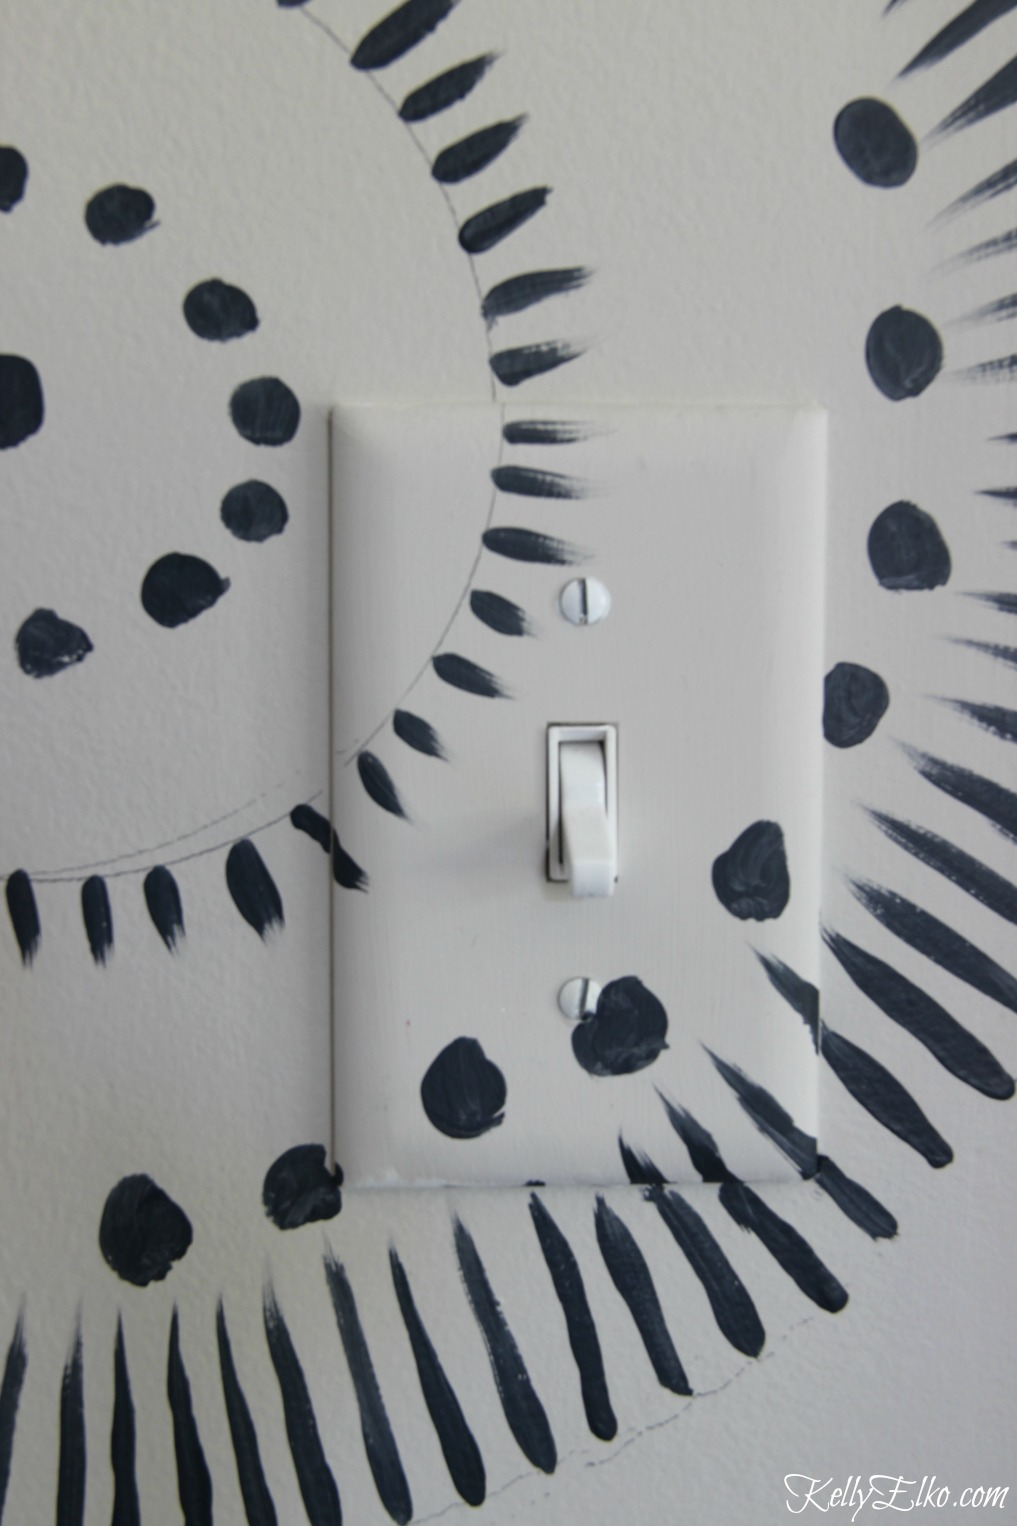 Paint right over switch plates and get her tips for painting a DIY wall mural kellyelko.com #wallmural #walls #walldecor #tipsandtricks #paintingtips #paintingideas